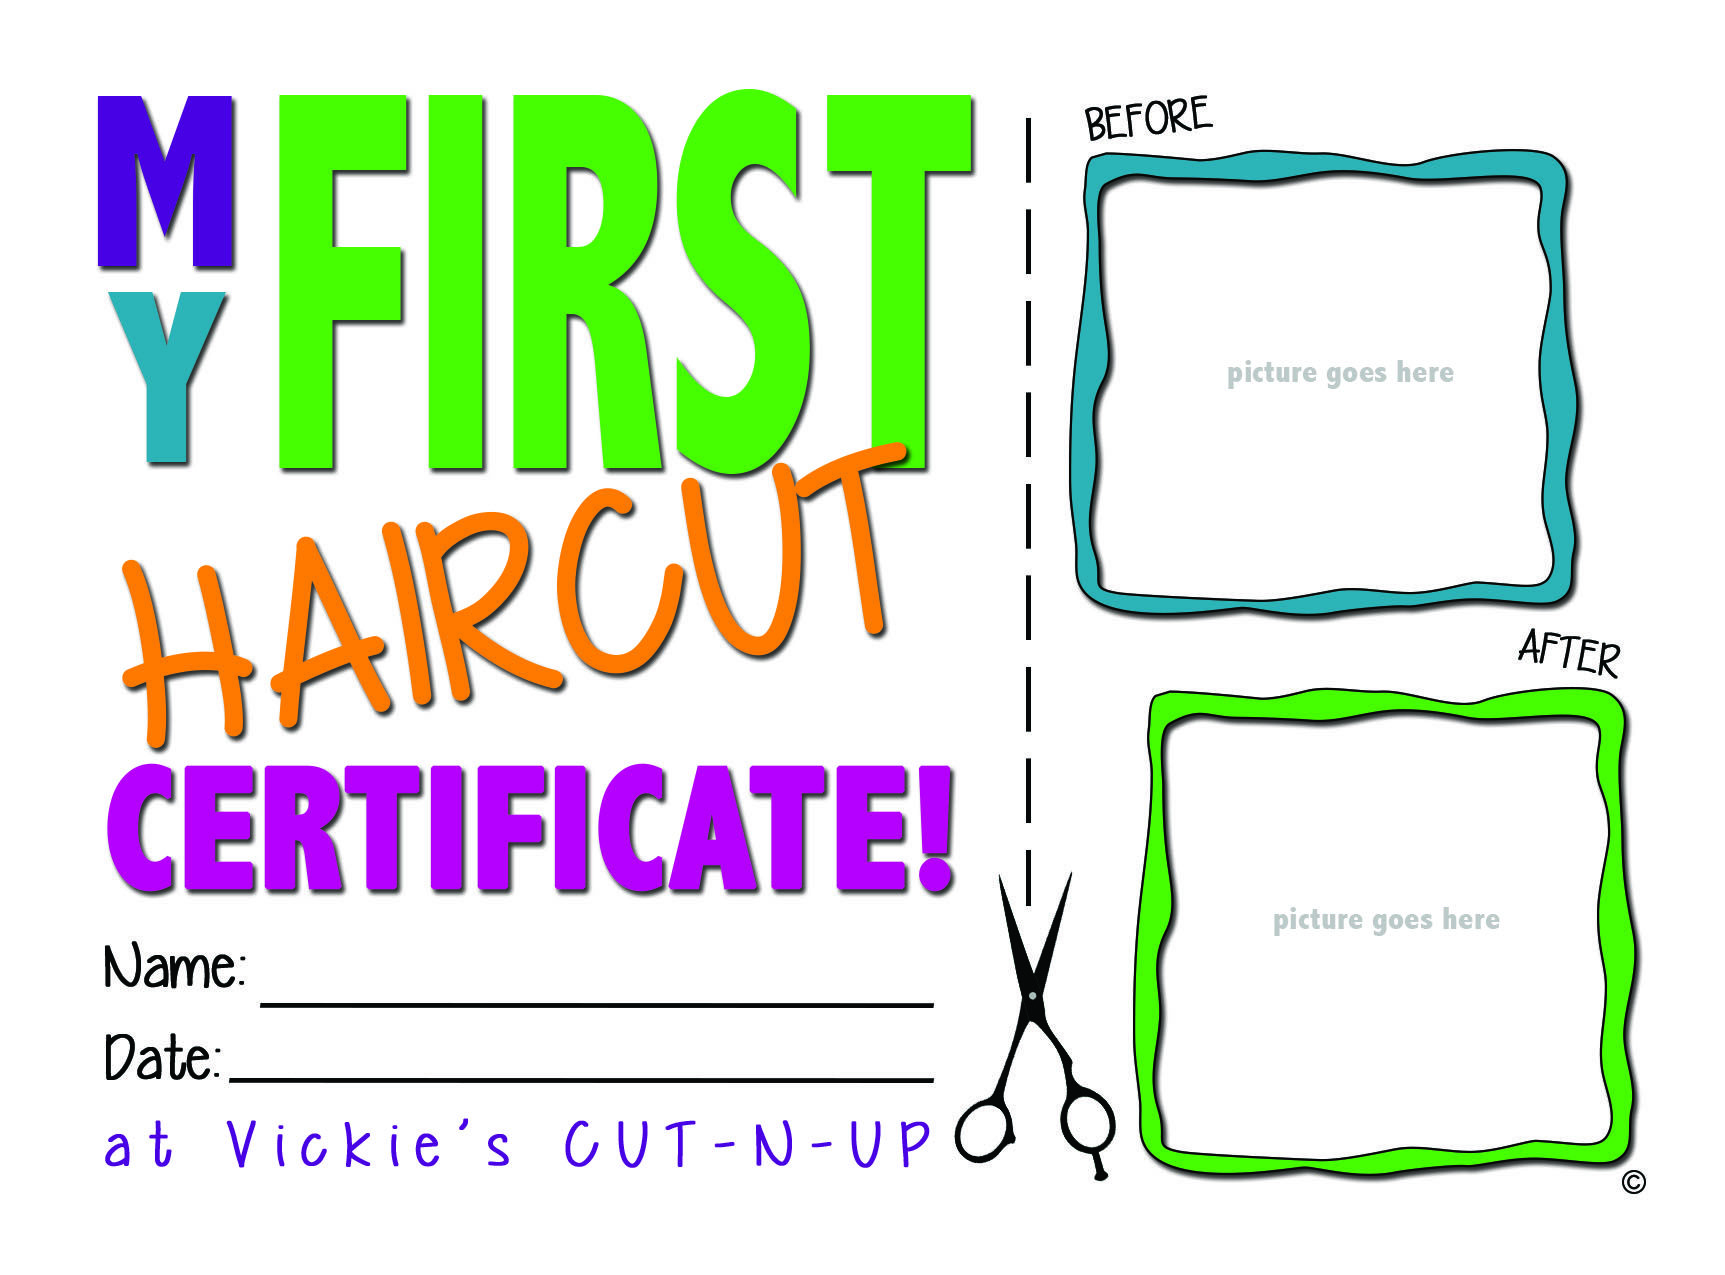 first haircut certificate template search results for my - My First Haircut Certificate Template